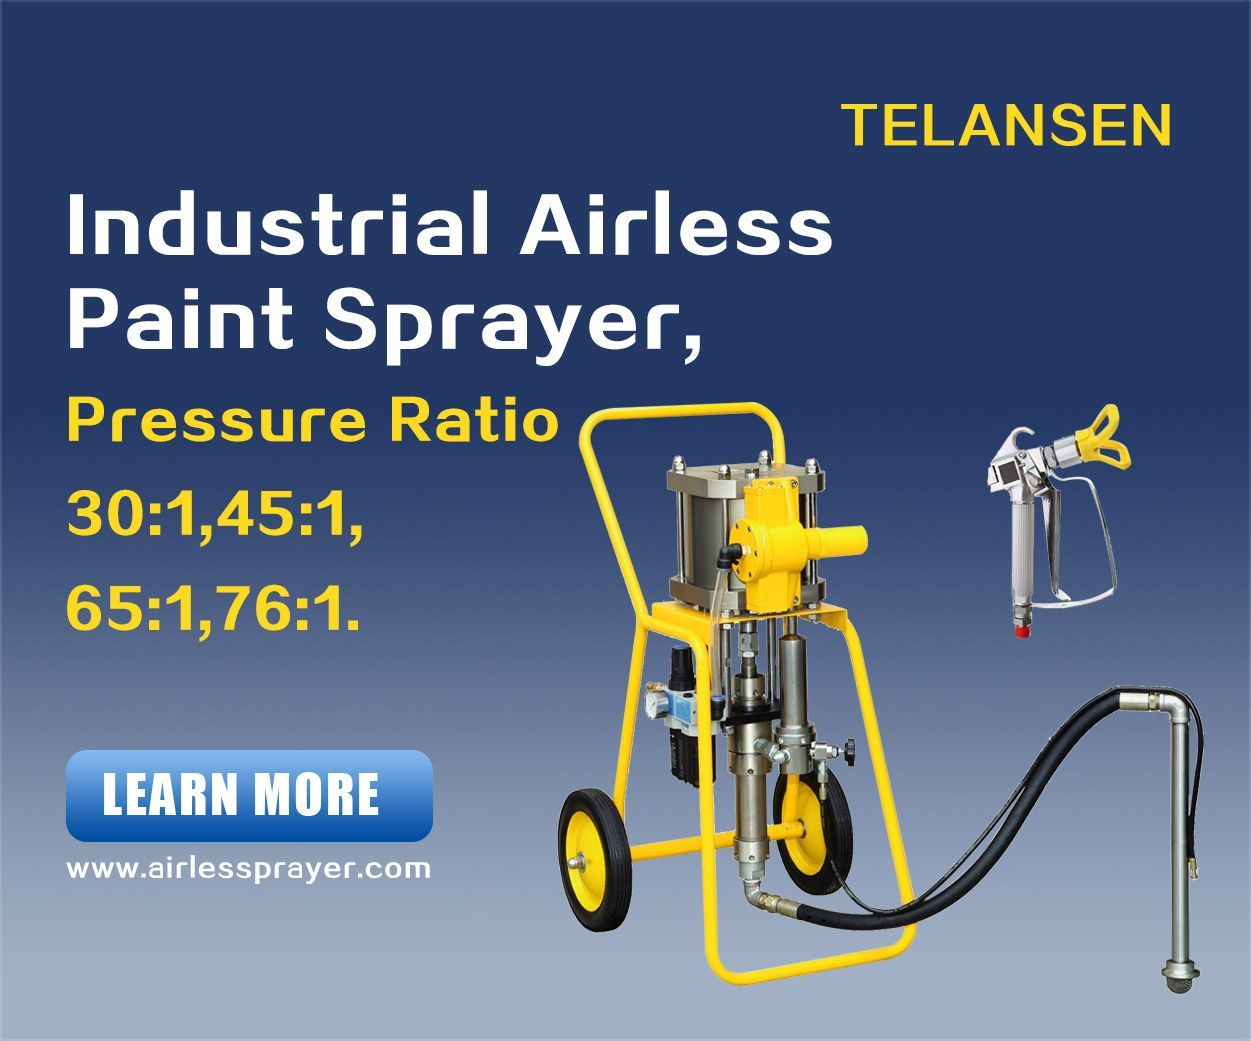 Top 5 Best Paint Sprayers For Cabinets Hvlp Paint Sprayer Paint Sprayer Reviews Best Paint Sprayer